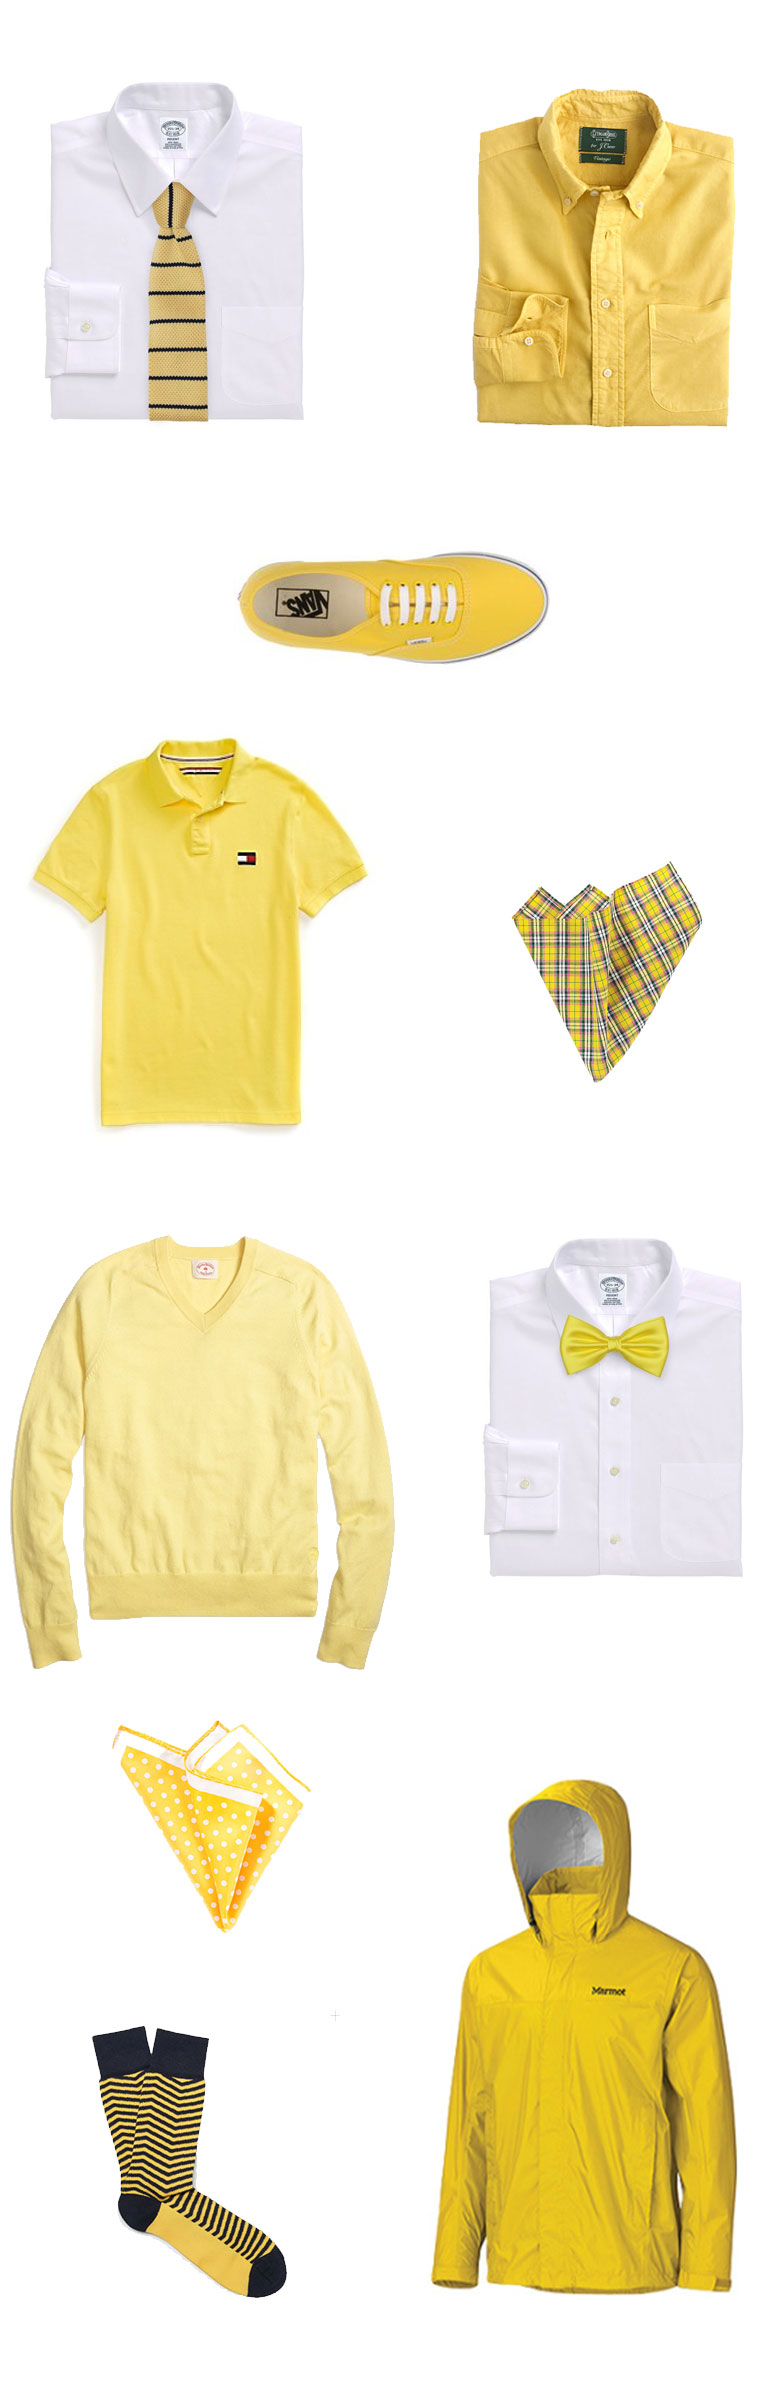 Men's Fashion Pieces in Yellow